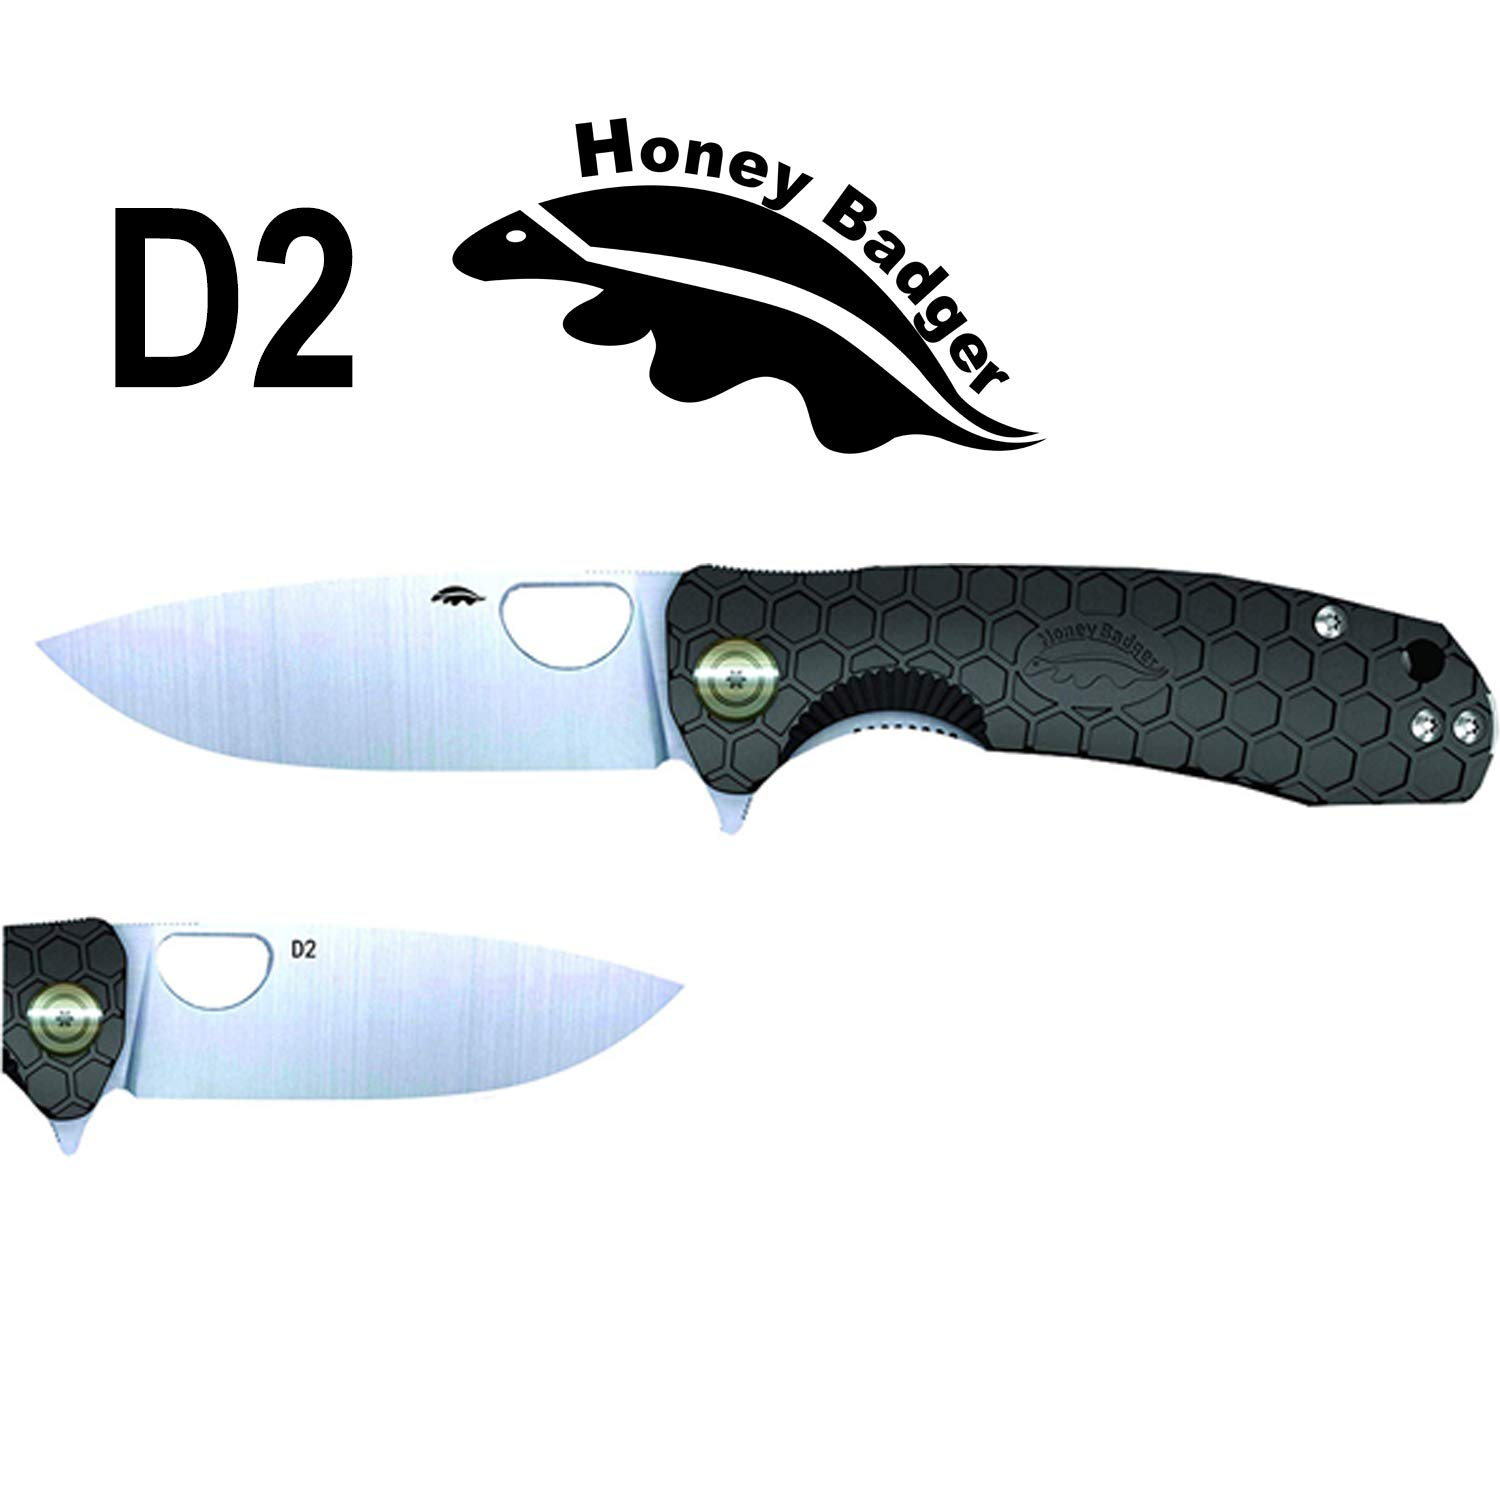 Western Active Honey Badger Pocket Knife Flipper EDC Knife for Hunting, Fishing, Tactical. Deep Pocket Carry Clip Gift Box with Torx Wrench (Black-D2, Medium 2.96oz - 4.1'' Closed - 3.2'' Blade) by Western Active